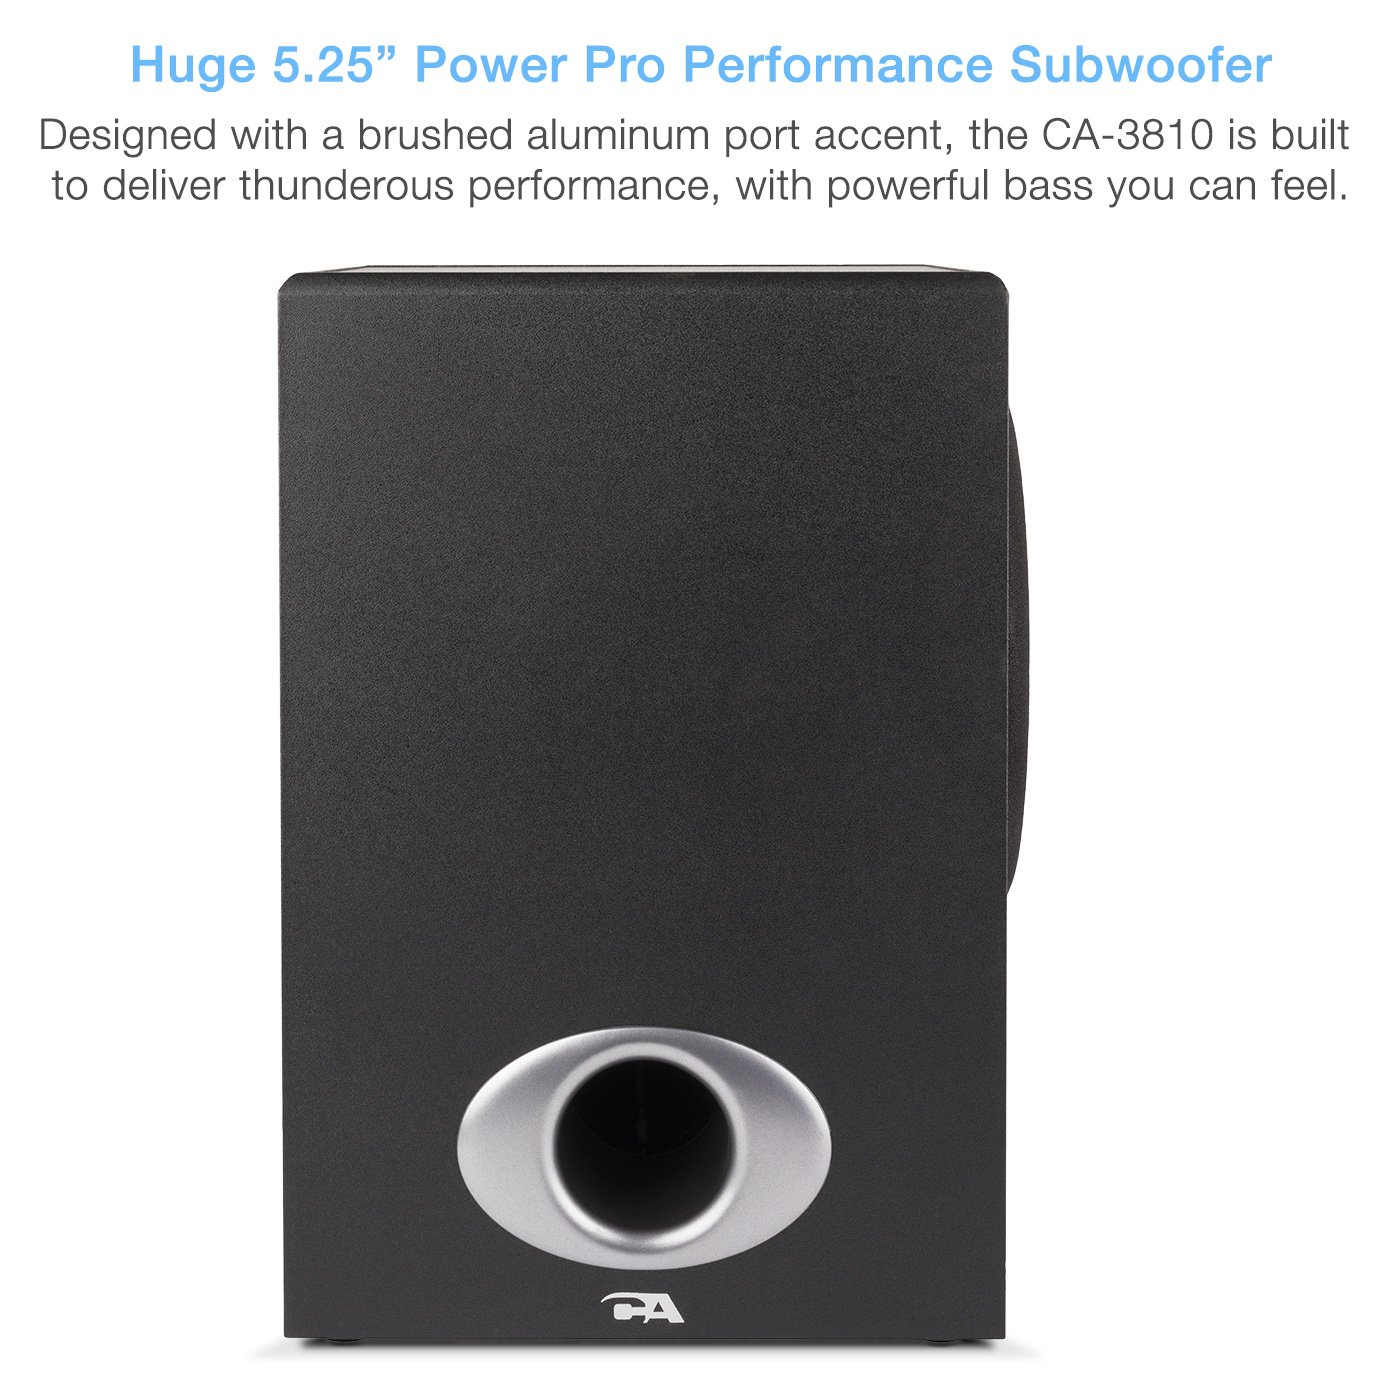 Cyber Acoustics High Power 2.1 Subwoofer Speaker System with 80W of Power – Perfect for Gaming, Movies, Music, and Multimedia Sound Solutions (CA-3810) by Cyber Acoustics (Image #4)